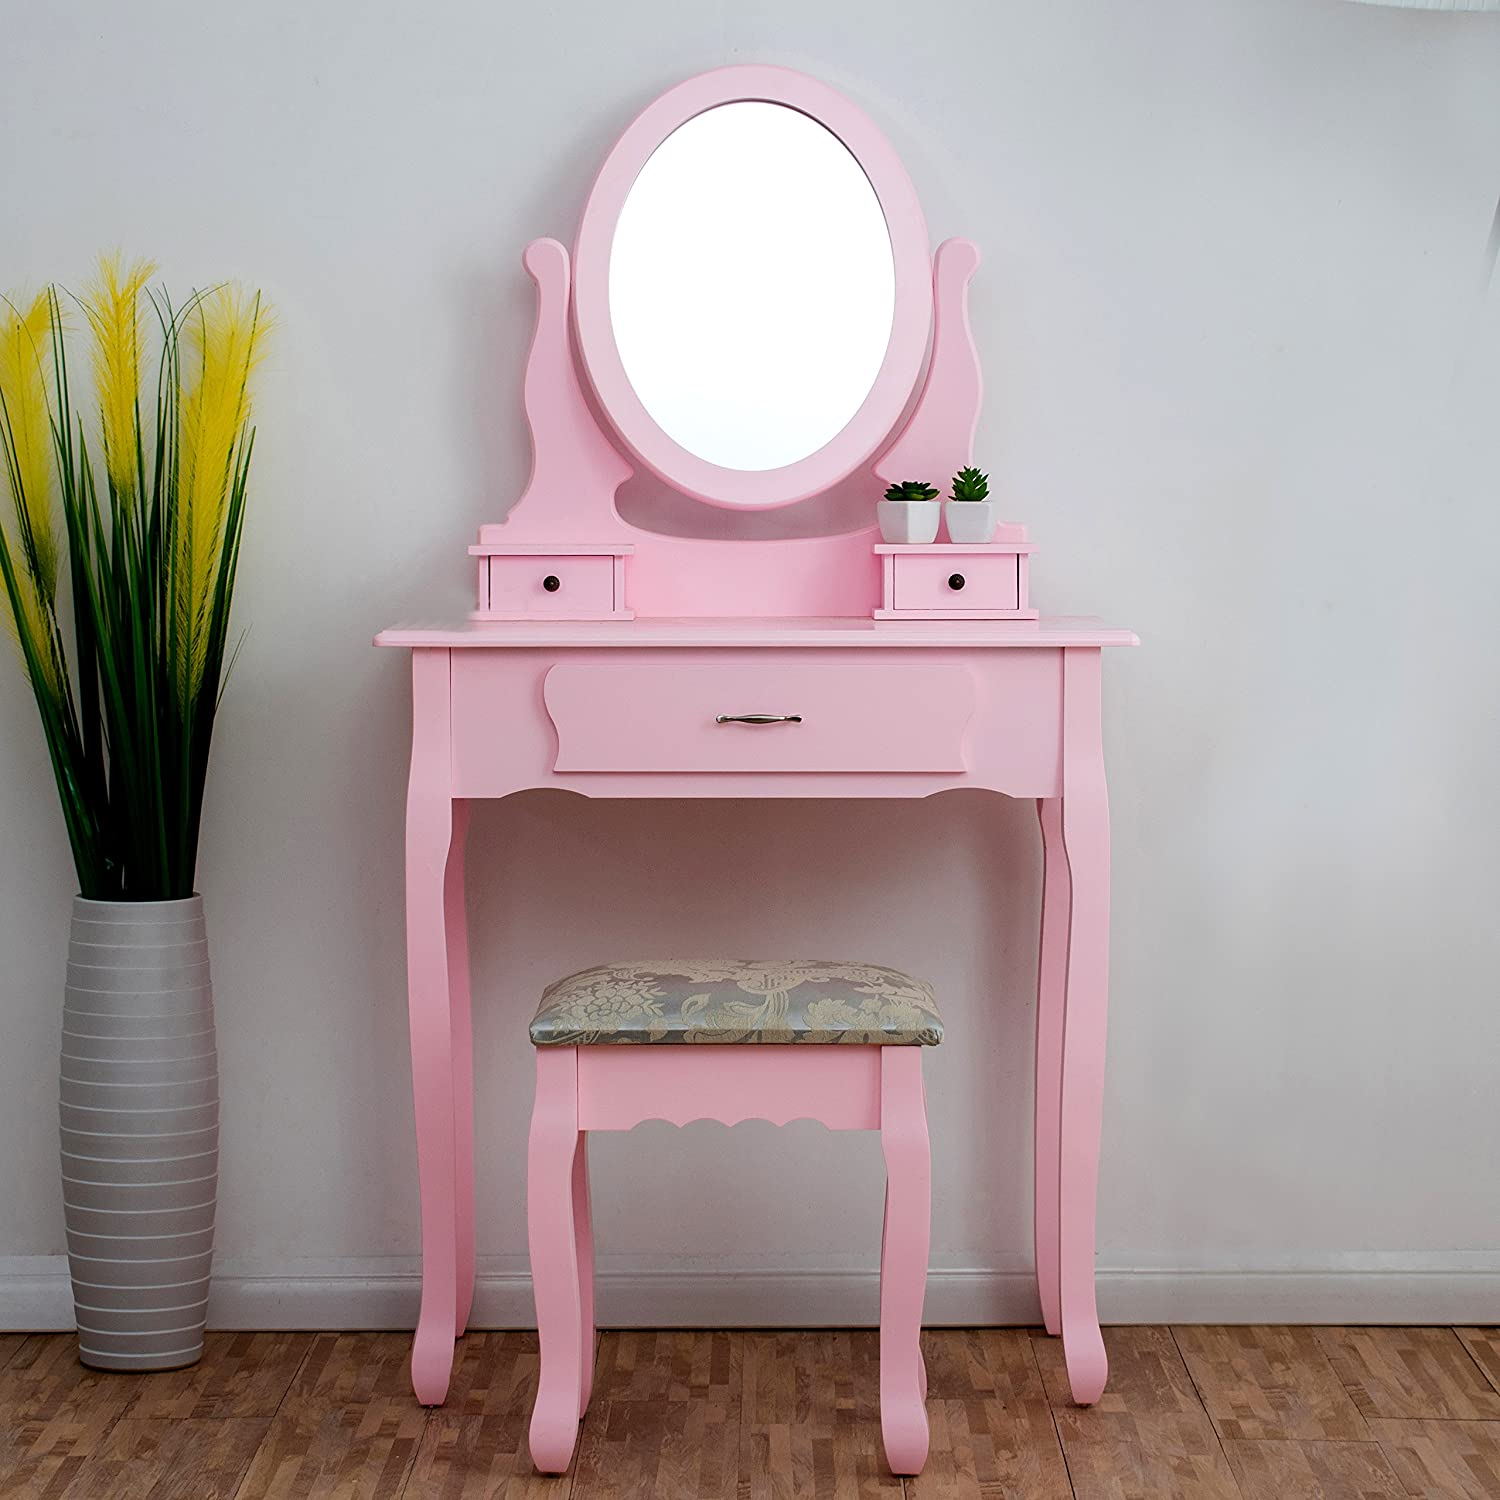 new arrival f207e 03239 CherryTree Furniture PINK Dressing Table 3-Drawer Makeup Dresser Set with  Stool Oval Mirror